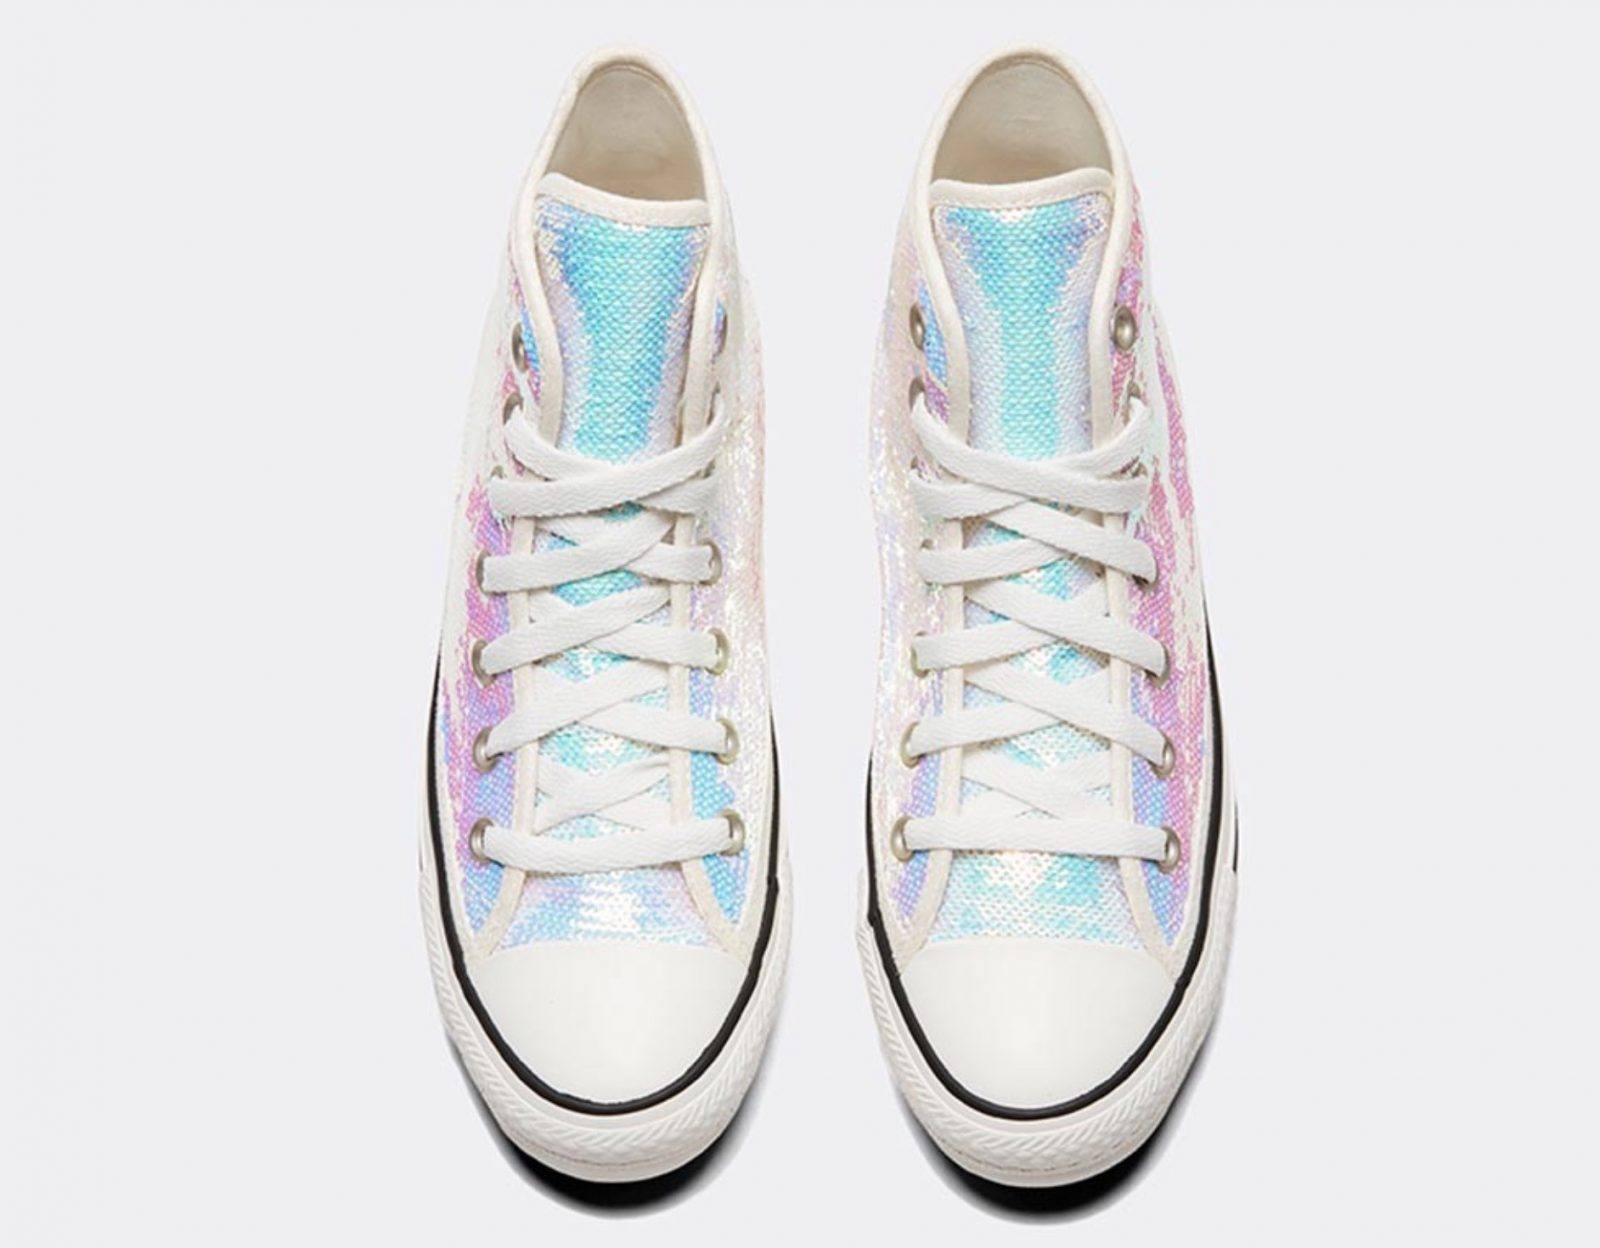 Converse Celebrate Their Chuck Taylor Silhouette In A Complete Sequin Look 4 laces